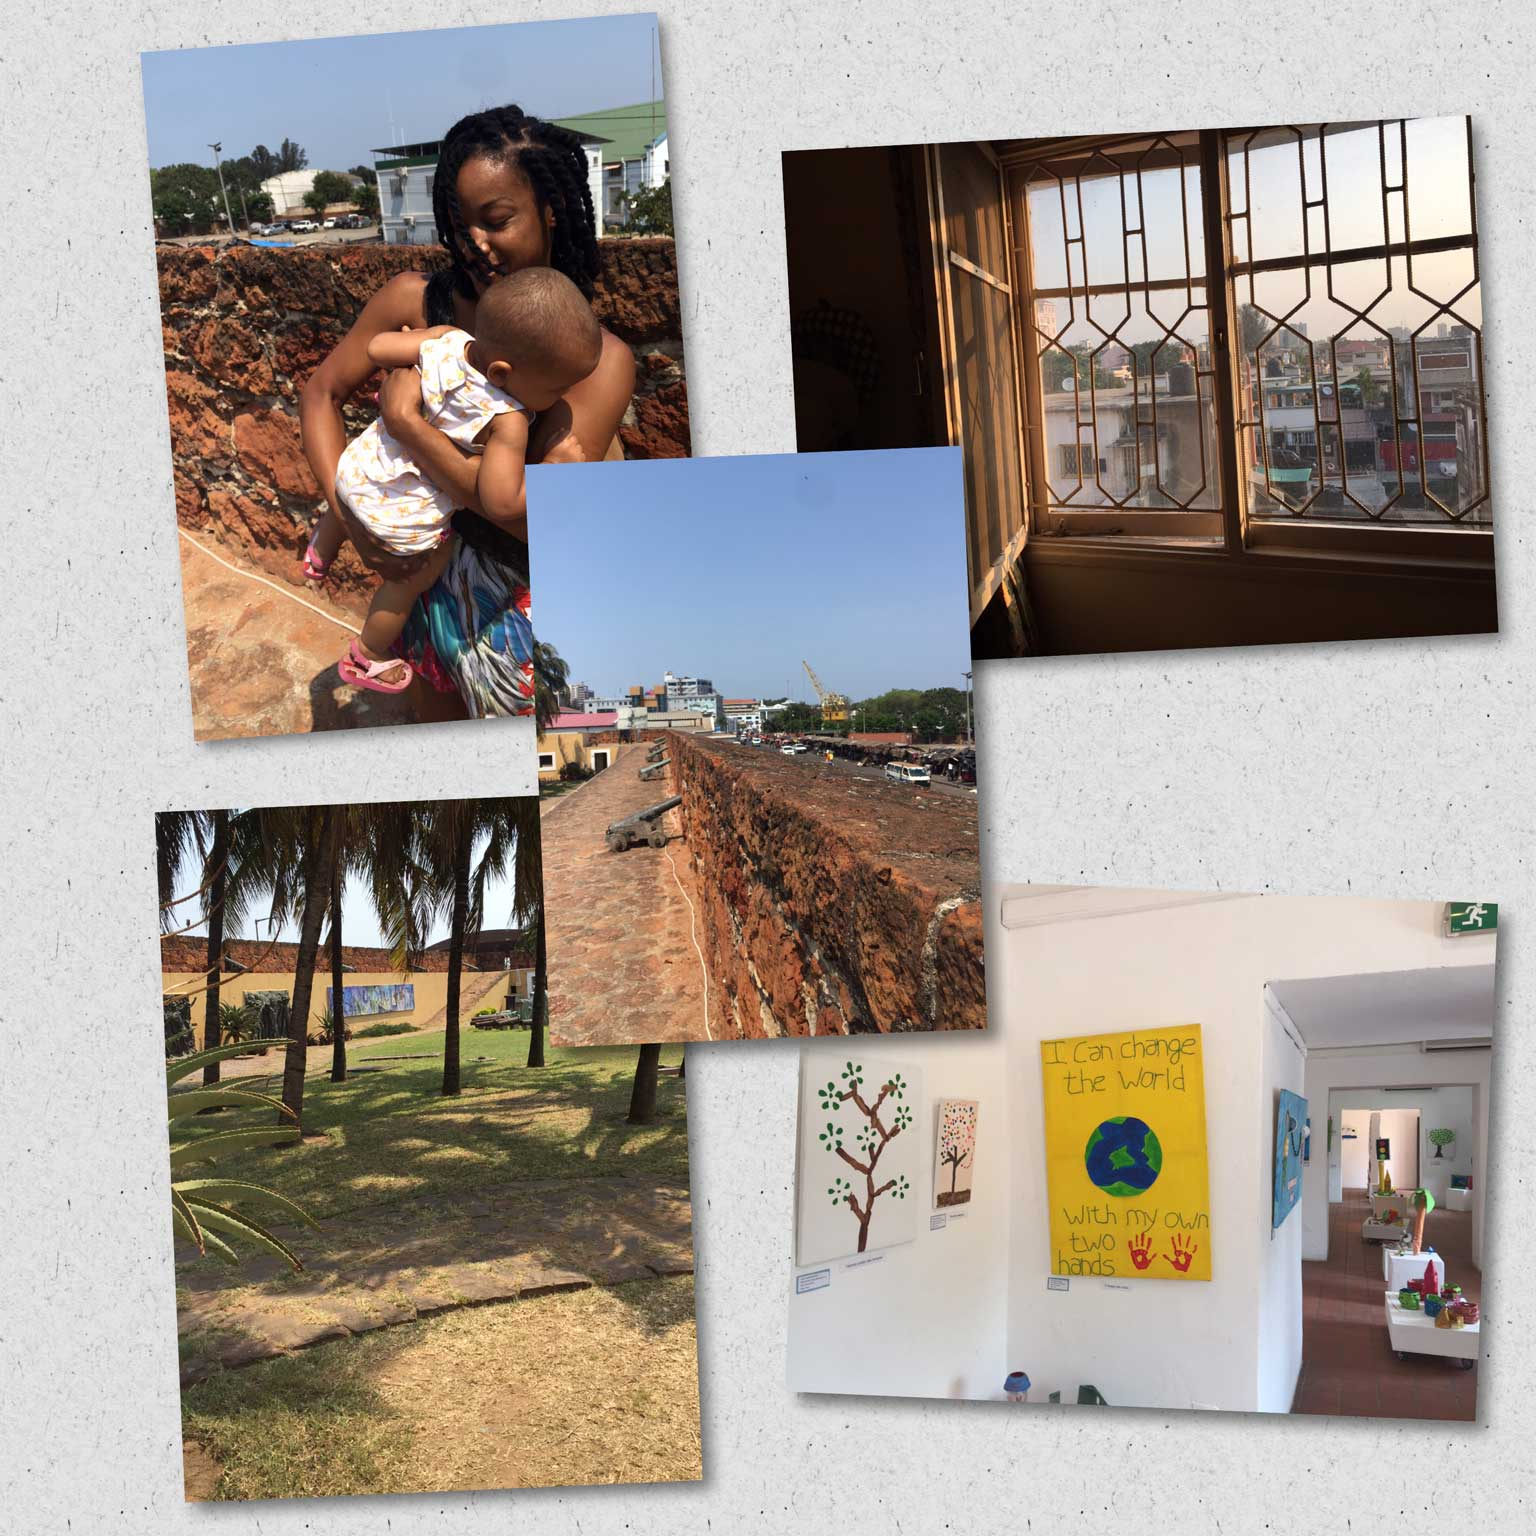 IPSD student, Dianna Jones' first day in Mozambique